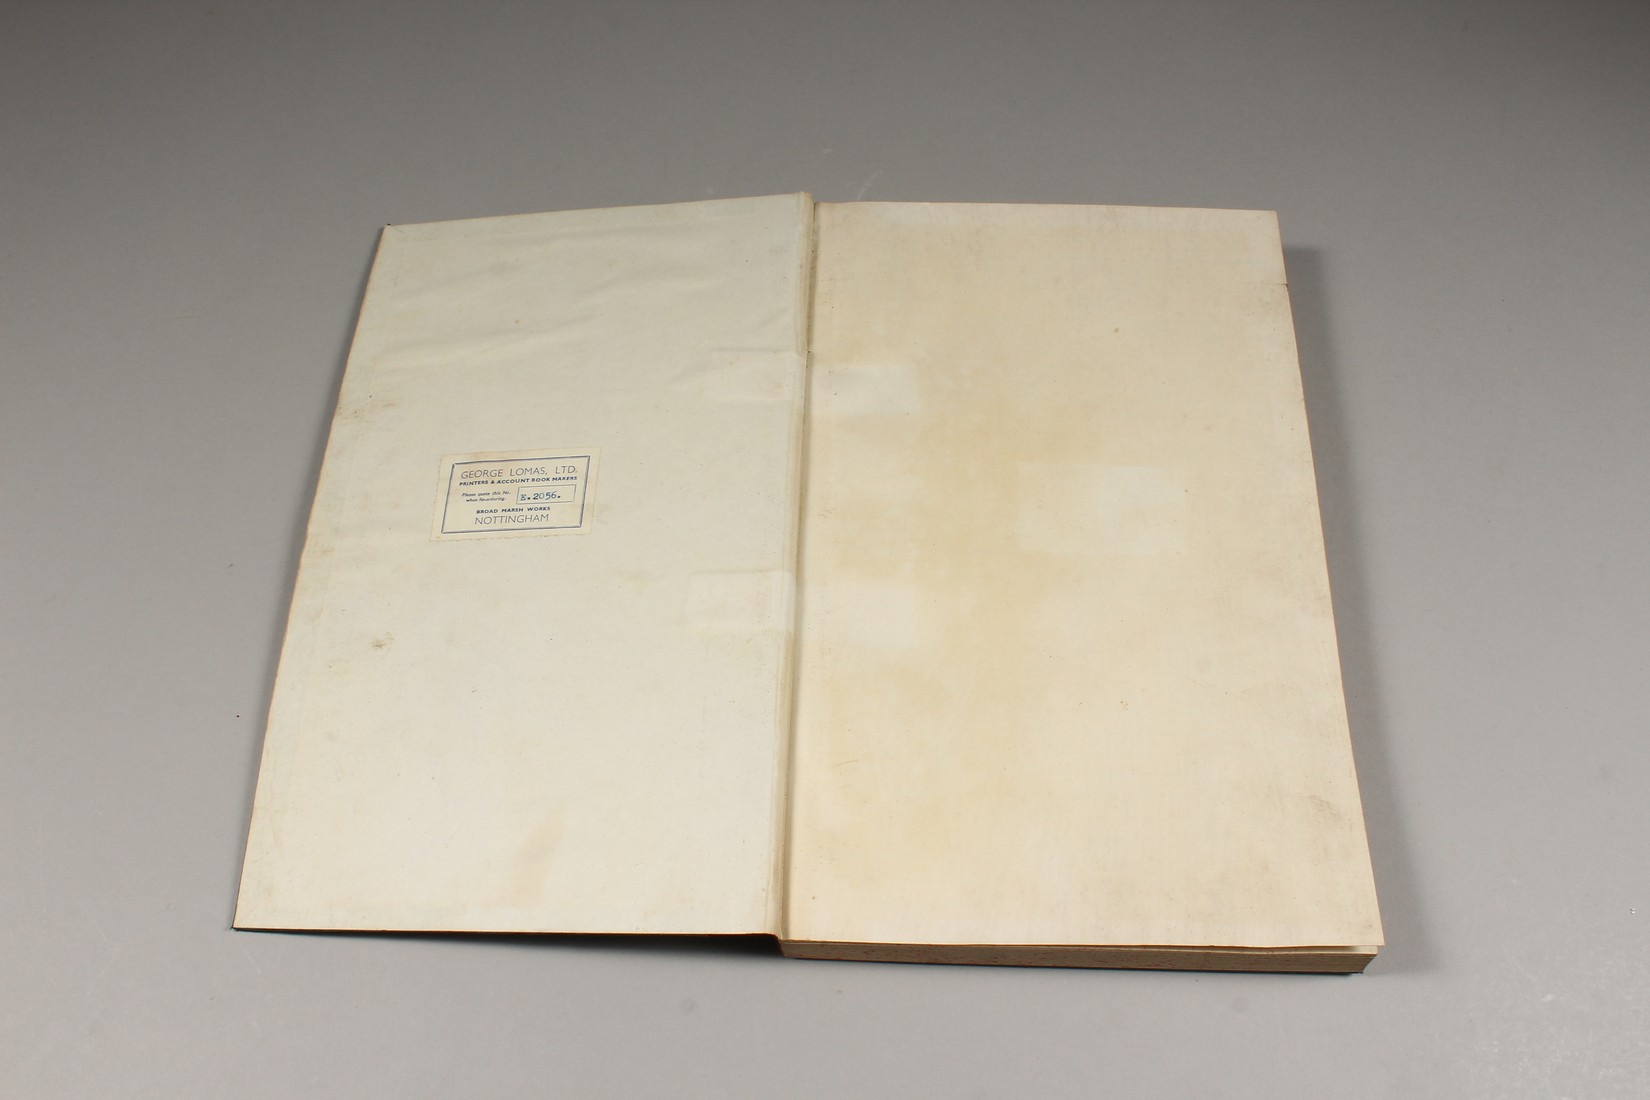 AN OLD UNUSED GOODS RECEIVED BOOK. - Image 3 of 5